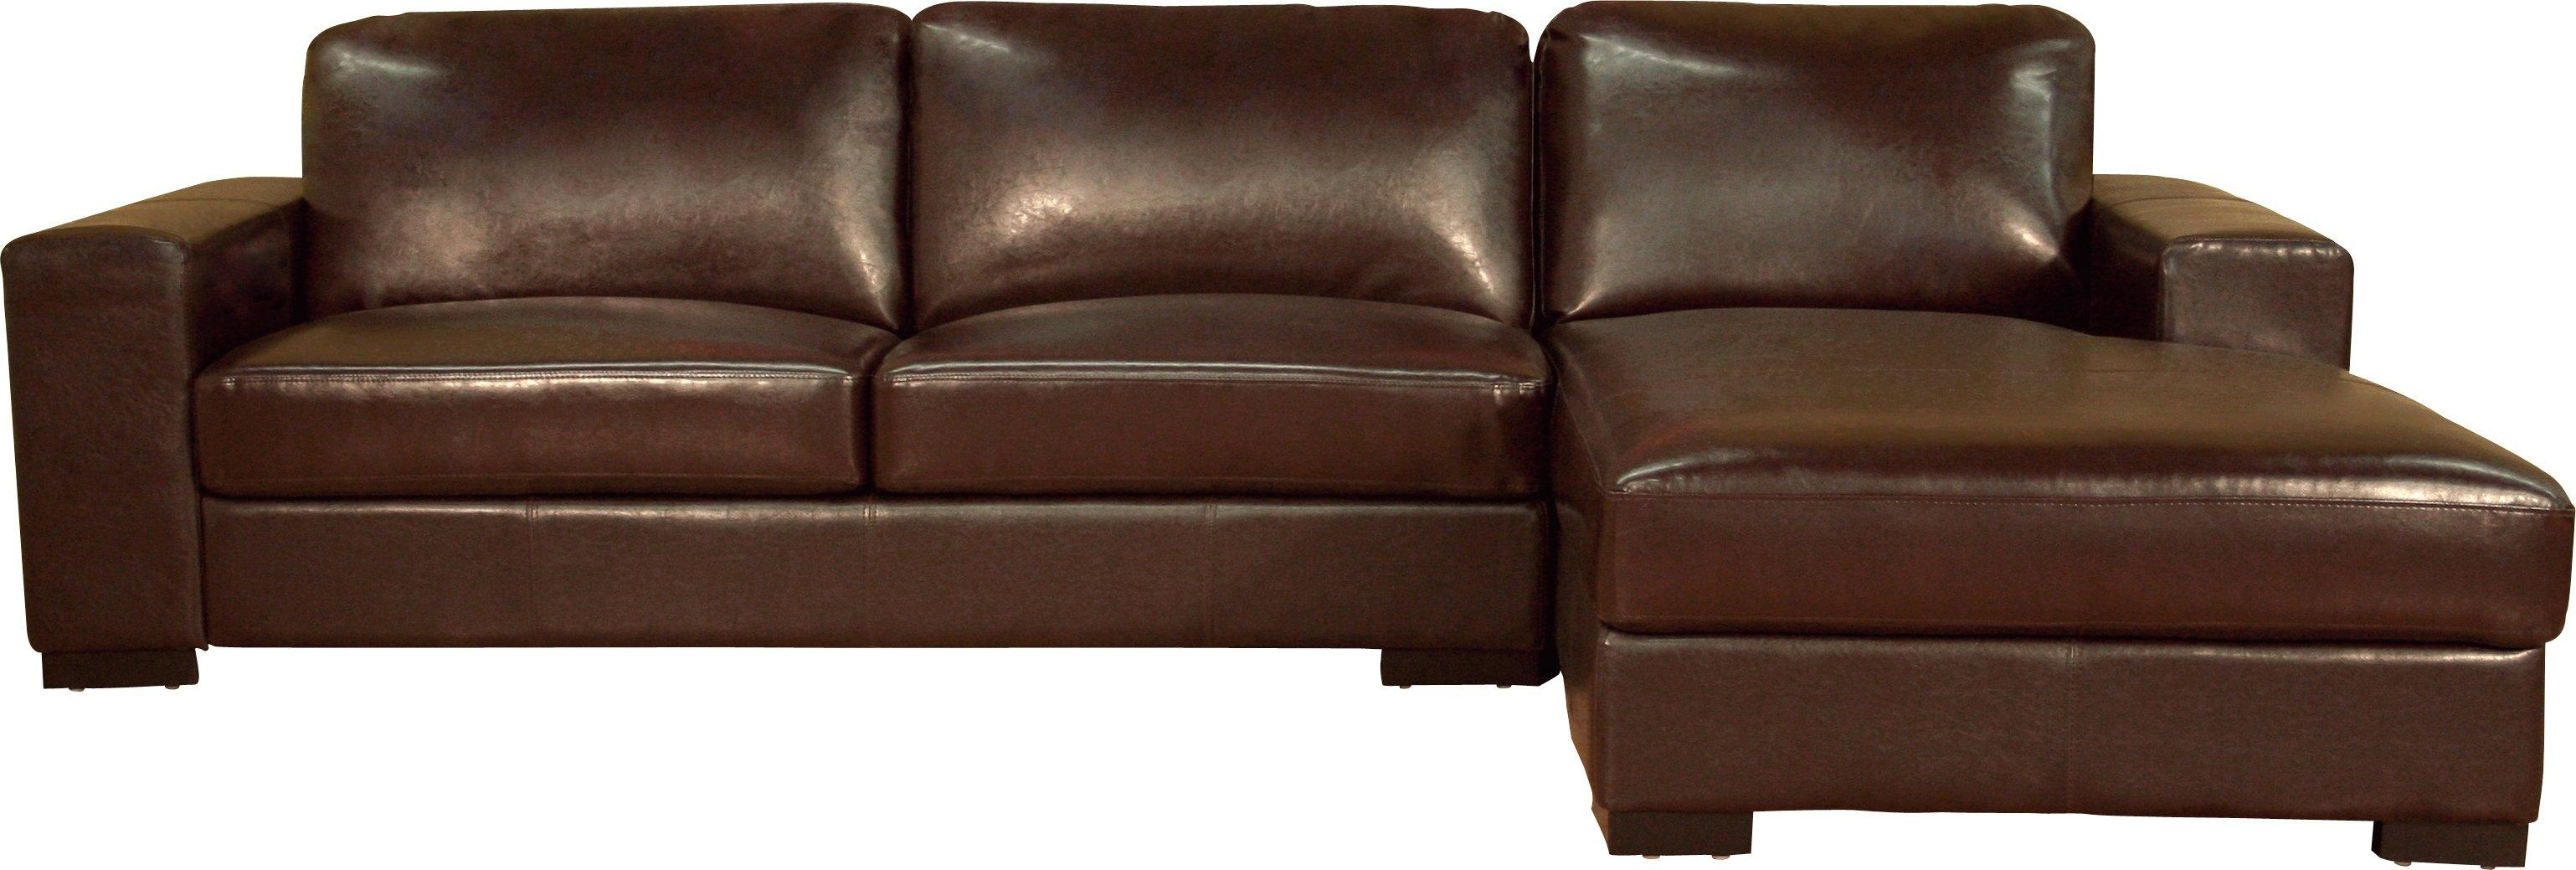 Furniture: Ikea Sectional Sofa Sleeper | Sectional Sleeper Sofa Inside Sleeper Sectional Sofa Ikea (View 19 of 20)